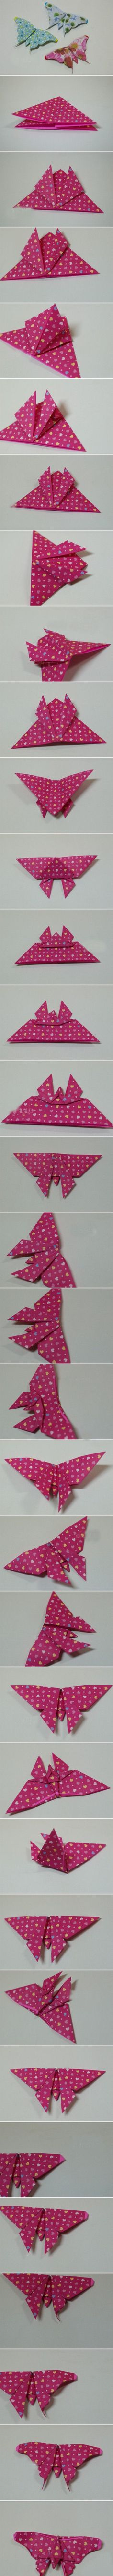 origami butterfly - great for embellishments on cards - bjl